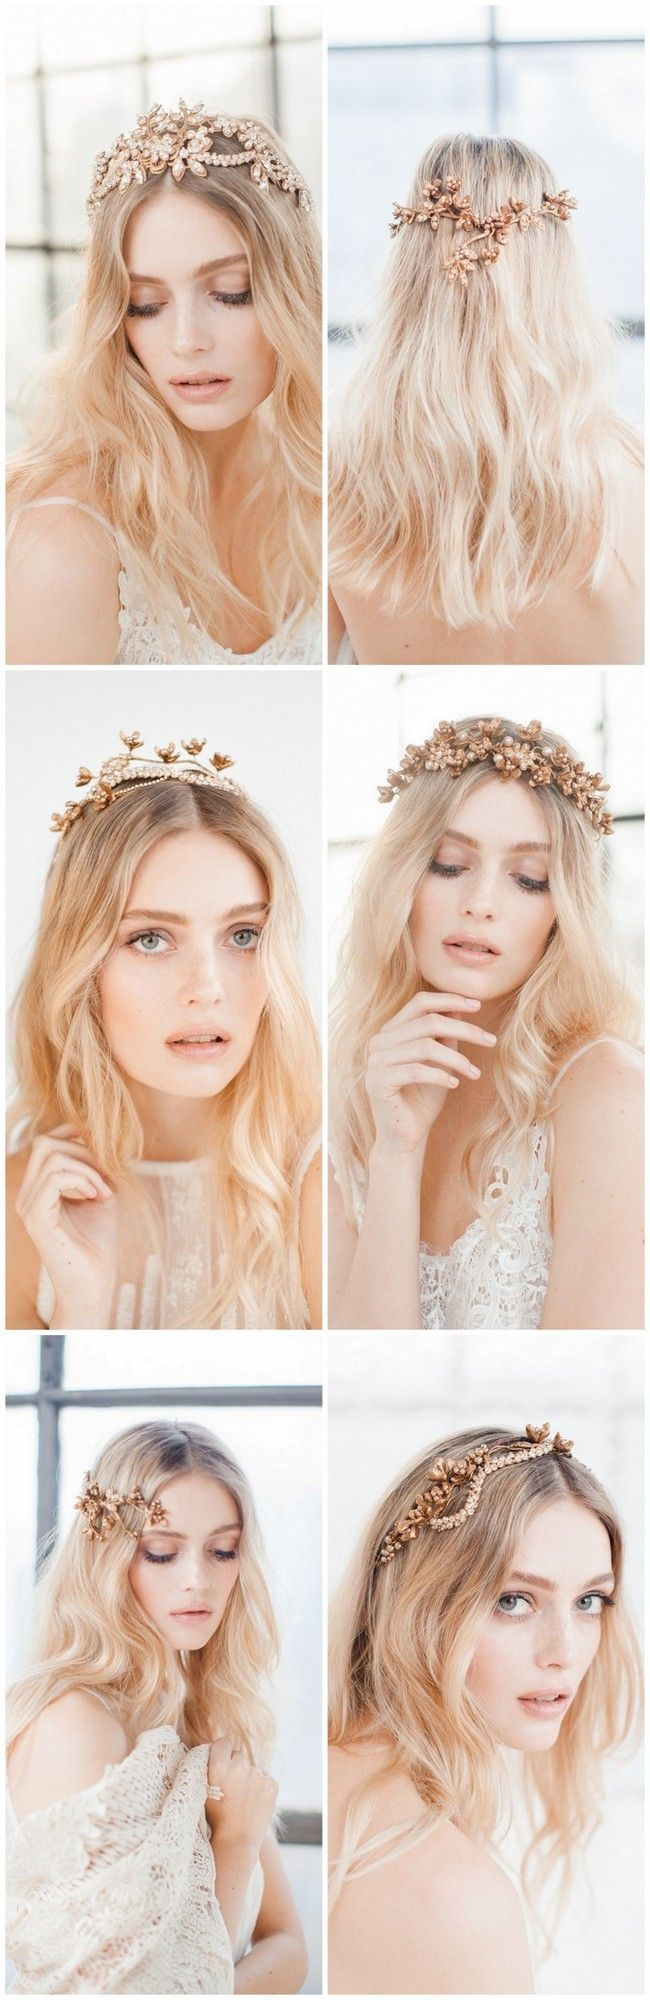 Boho, handcrafted, luxe and beautiful! Jannie Baltzer's Wild Nature Bridal Headpiece Collection 2016 is here. The headpieces appear almost like a beautiful conglomerate of nature findings, and the designer is always trying to create a lovely balance between the rustic and delicate. The headpieces are delicately hand painted with antique gold to complete the ornamental and dreamy feel. Pics Sandra Aberg photography http://www.confettidaydreams.com/jannie-baltzer-wild-nature-bridal-headpieces/